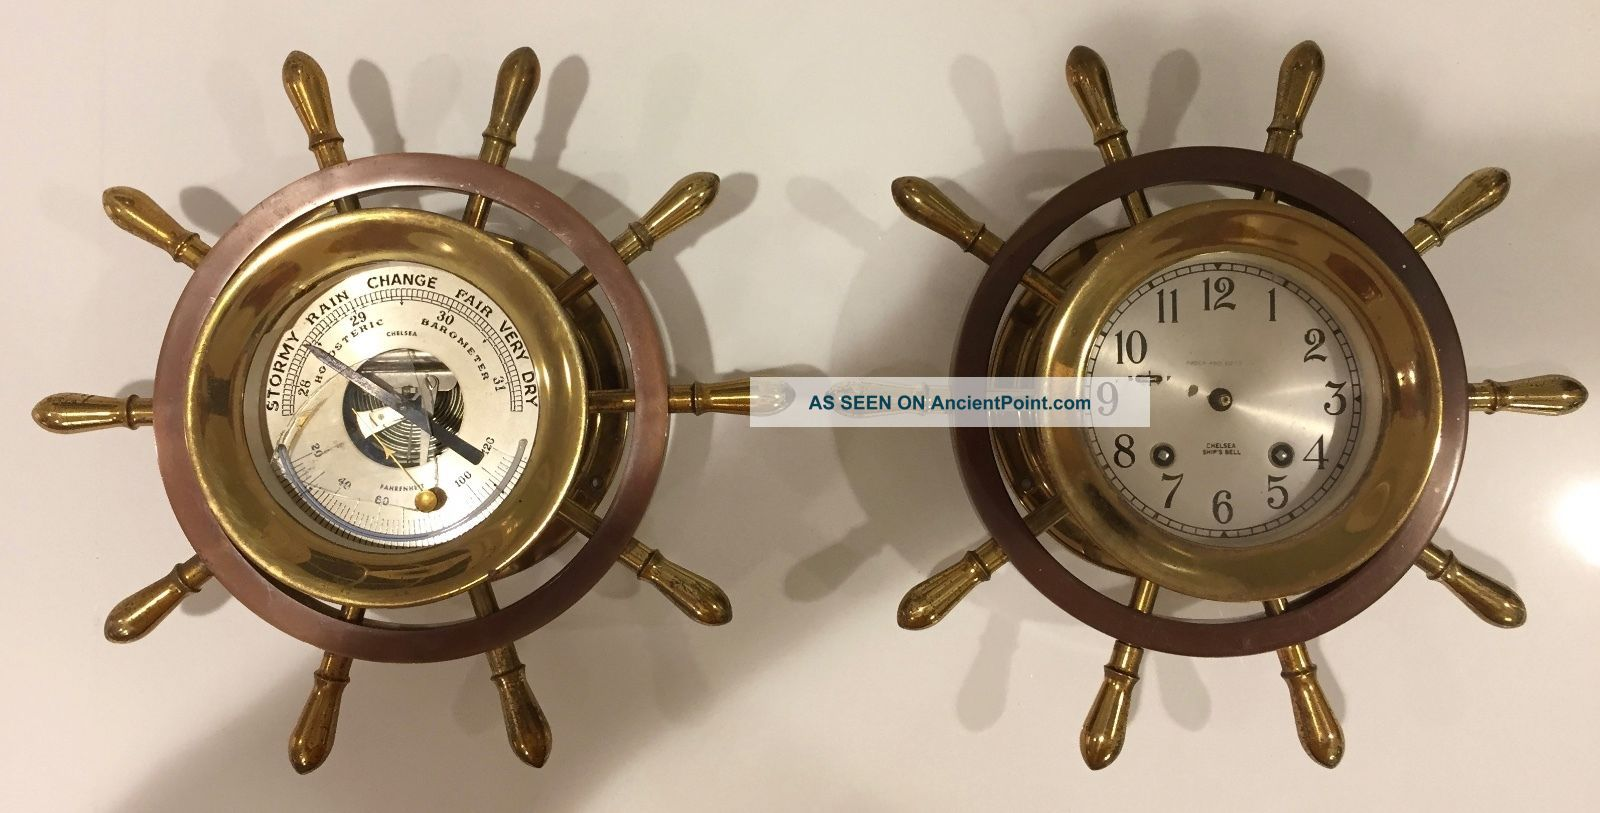 Chelsea Vintage Ship ' S Wheel Maritime Clock And Barometer 1955 - 1960 - Needs Parts Clocks photo